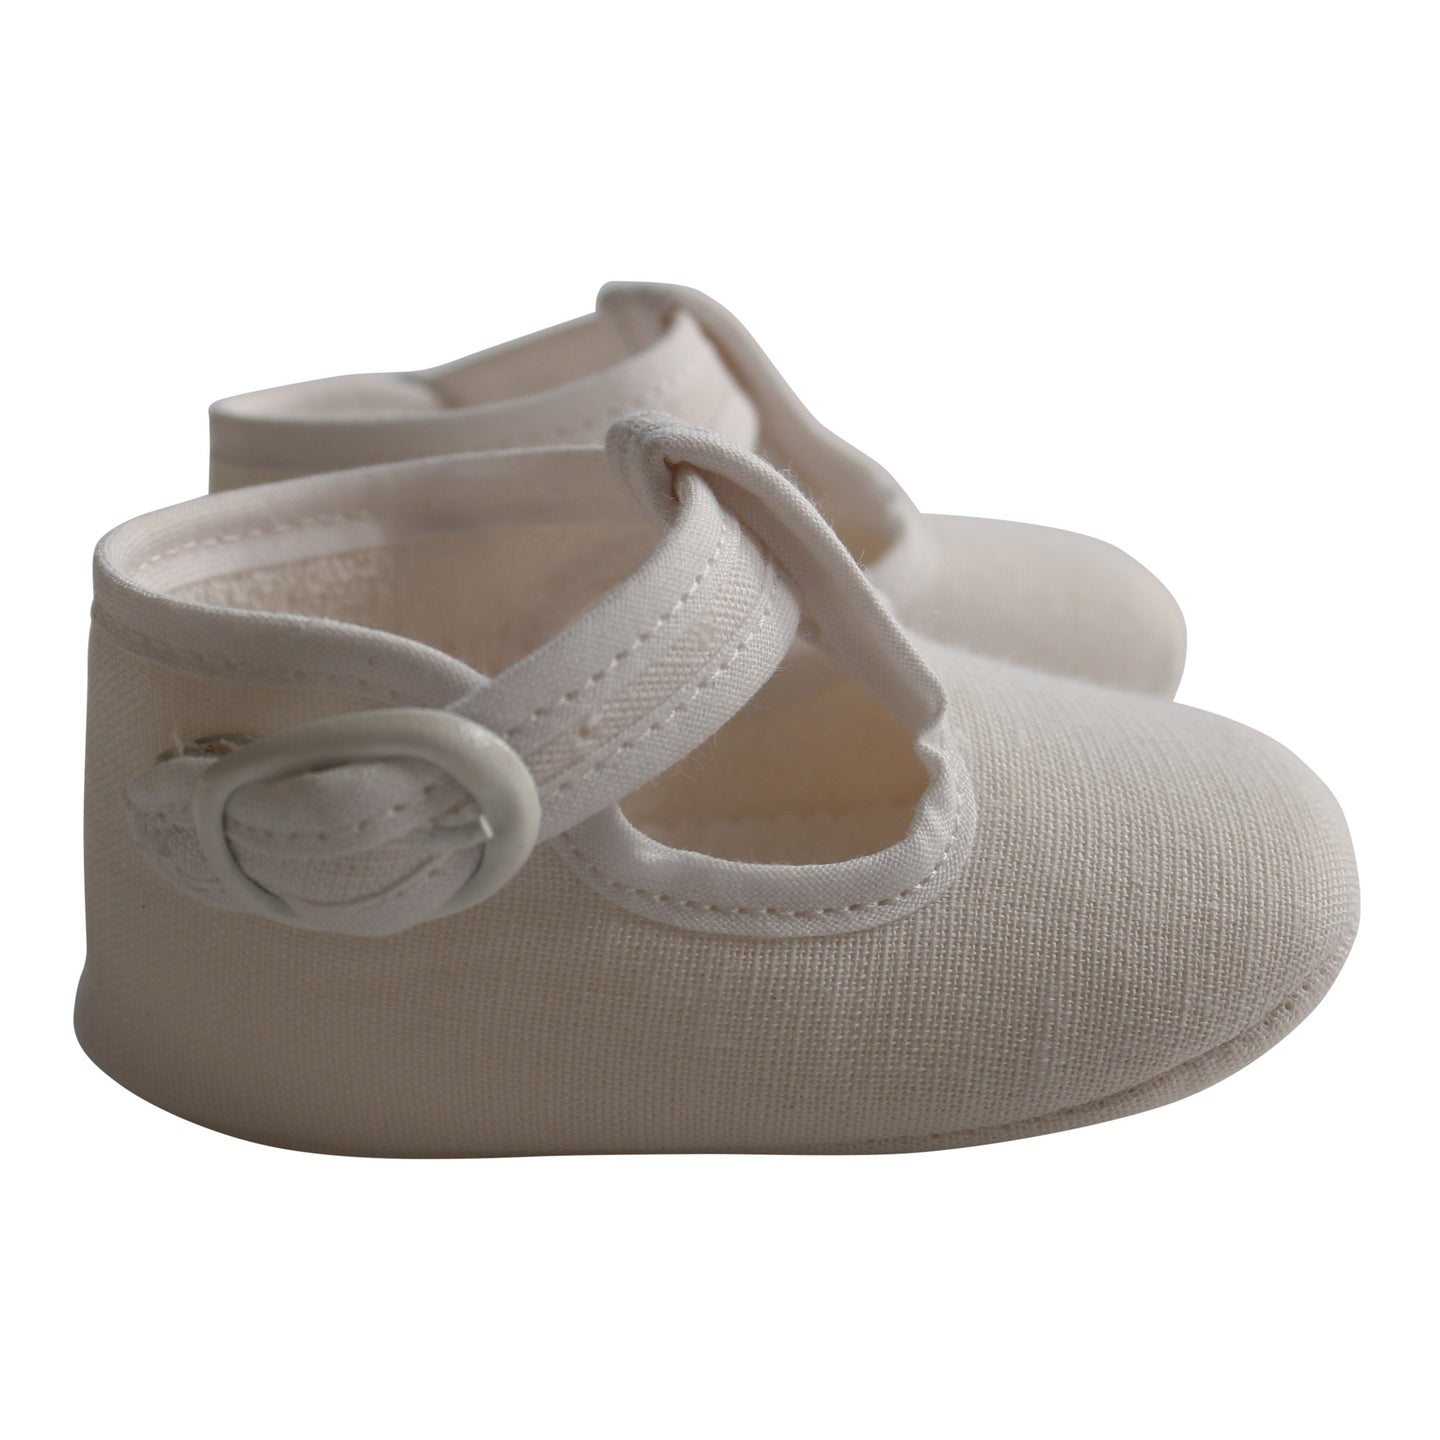 Paz Rodriguez White Baby Shoes